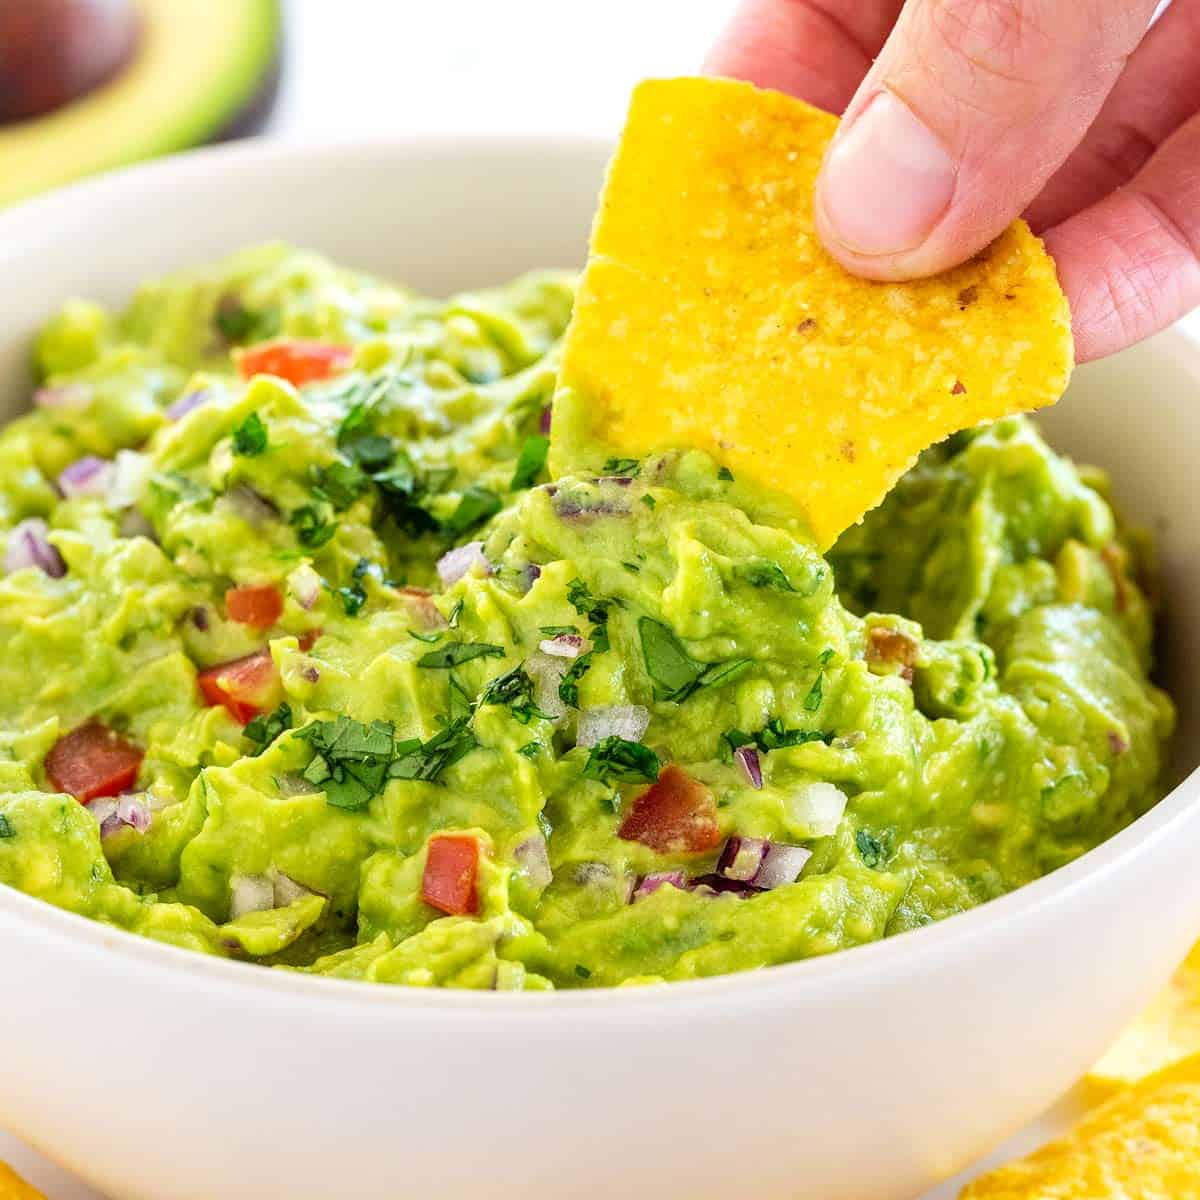 Guacamole Market Research Report: Global Industry Overview & Outlook (2019-2024) - IMARCGroup